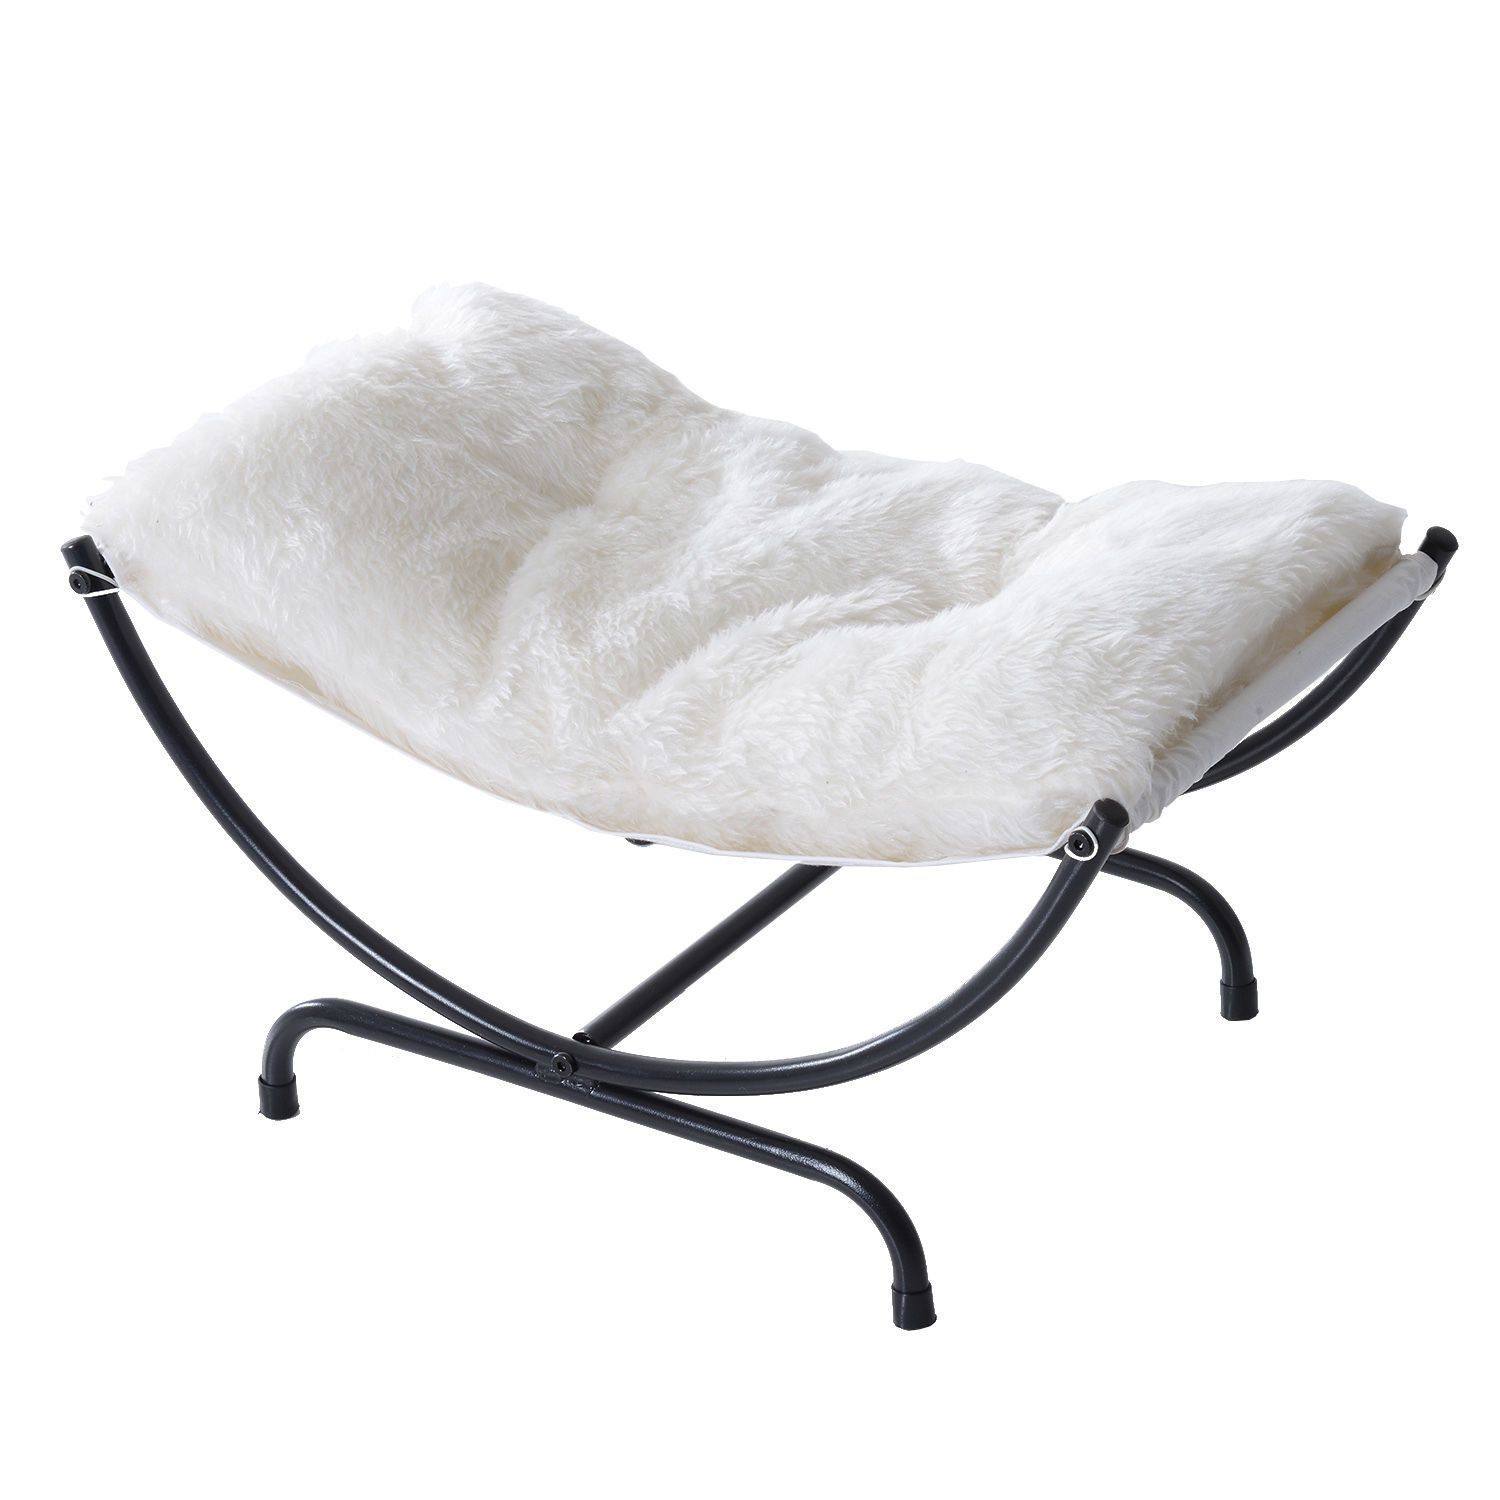 Plush Posing Hammock for Newborn Photography Black